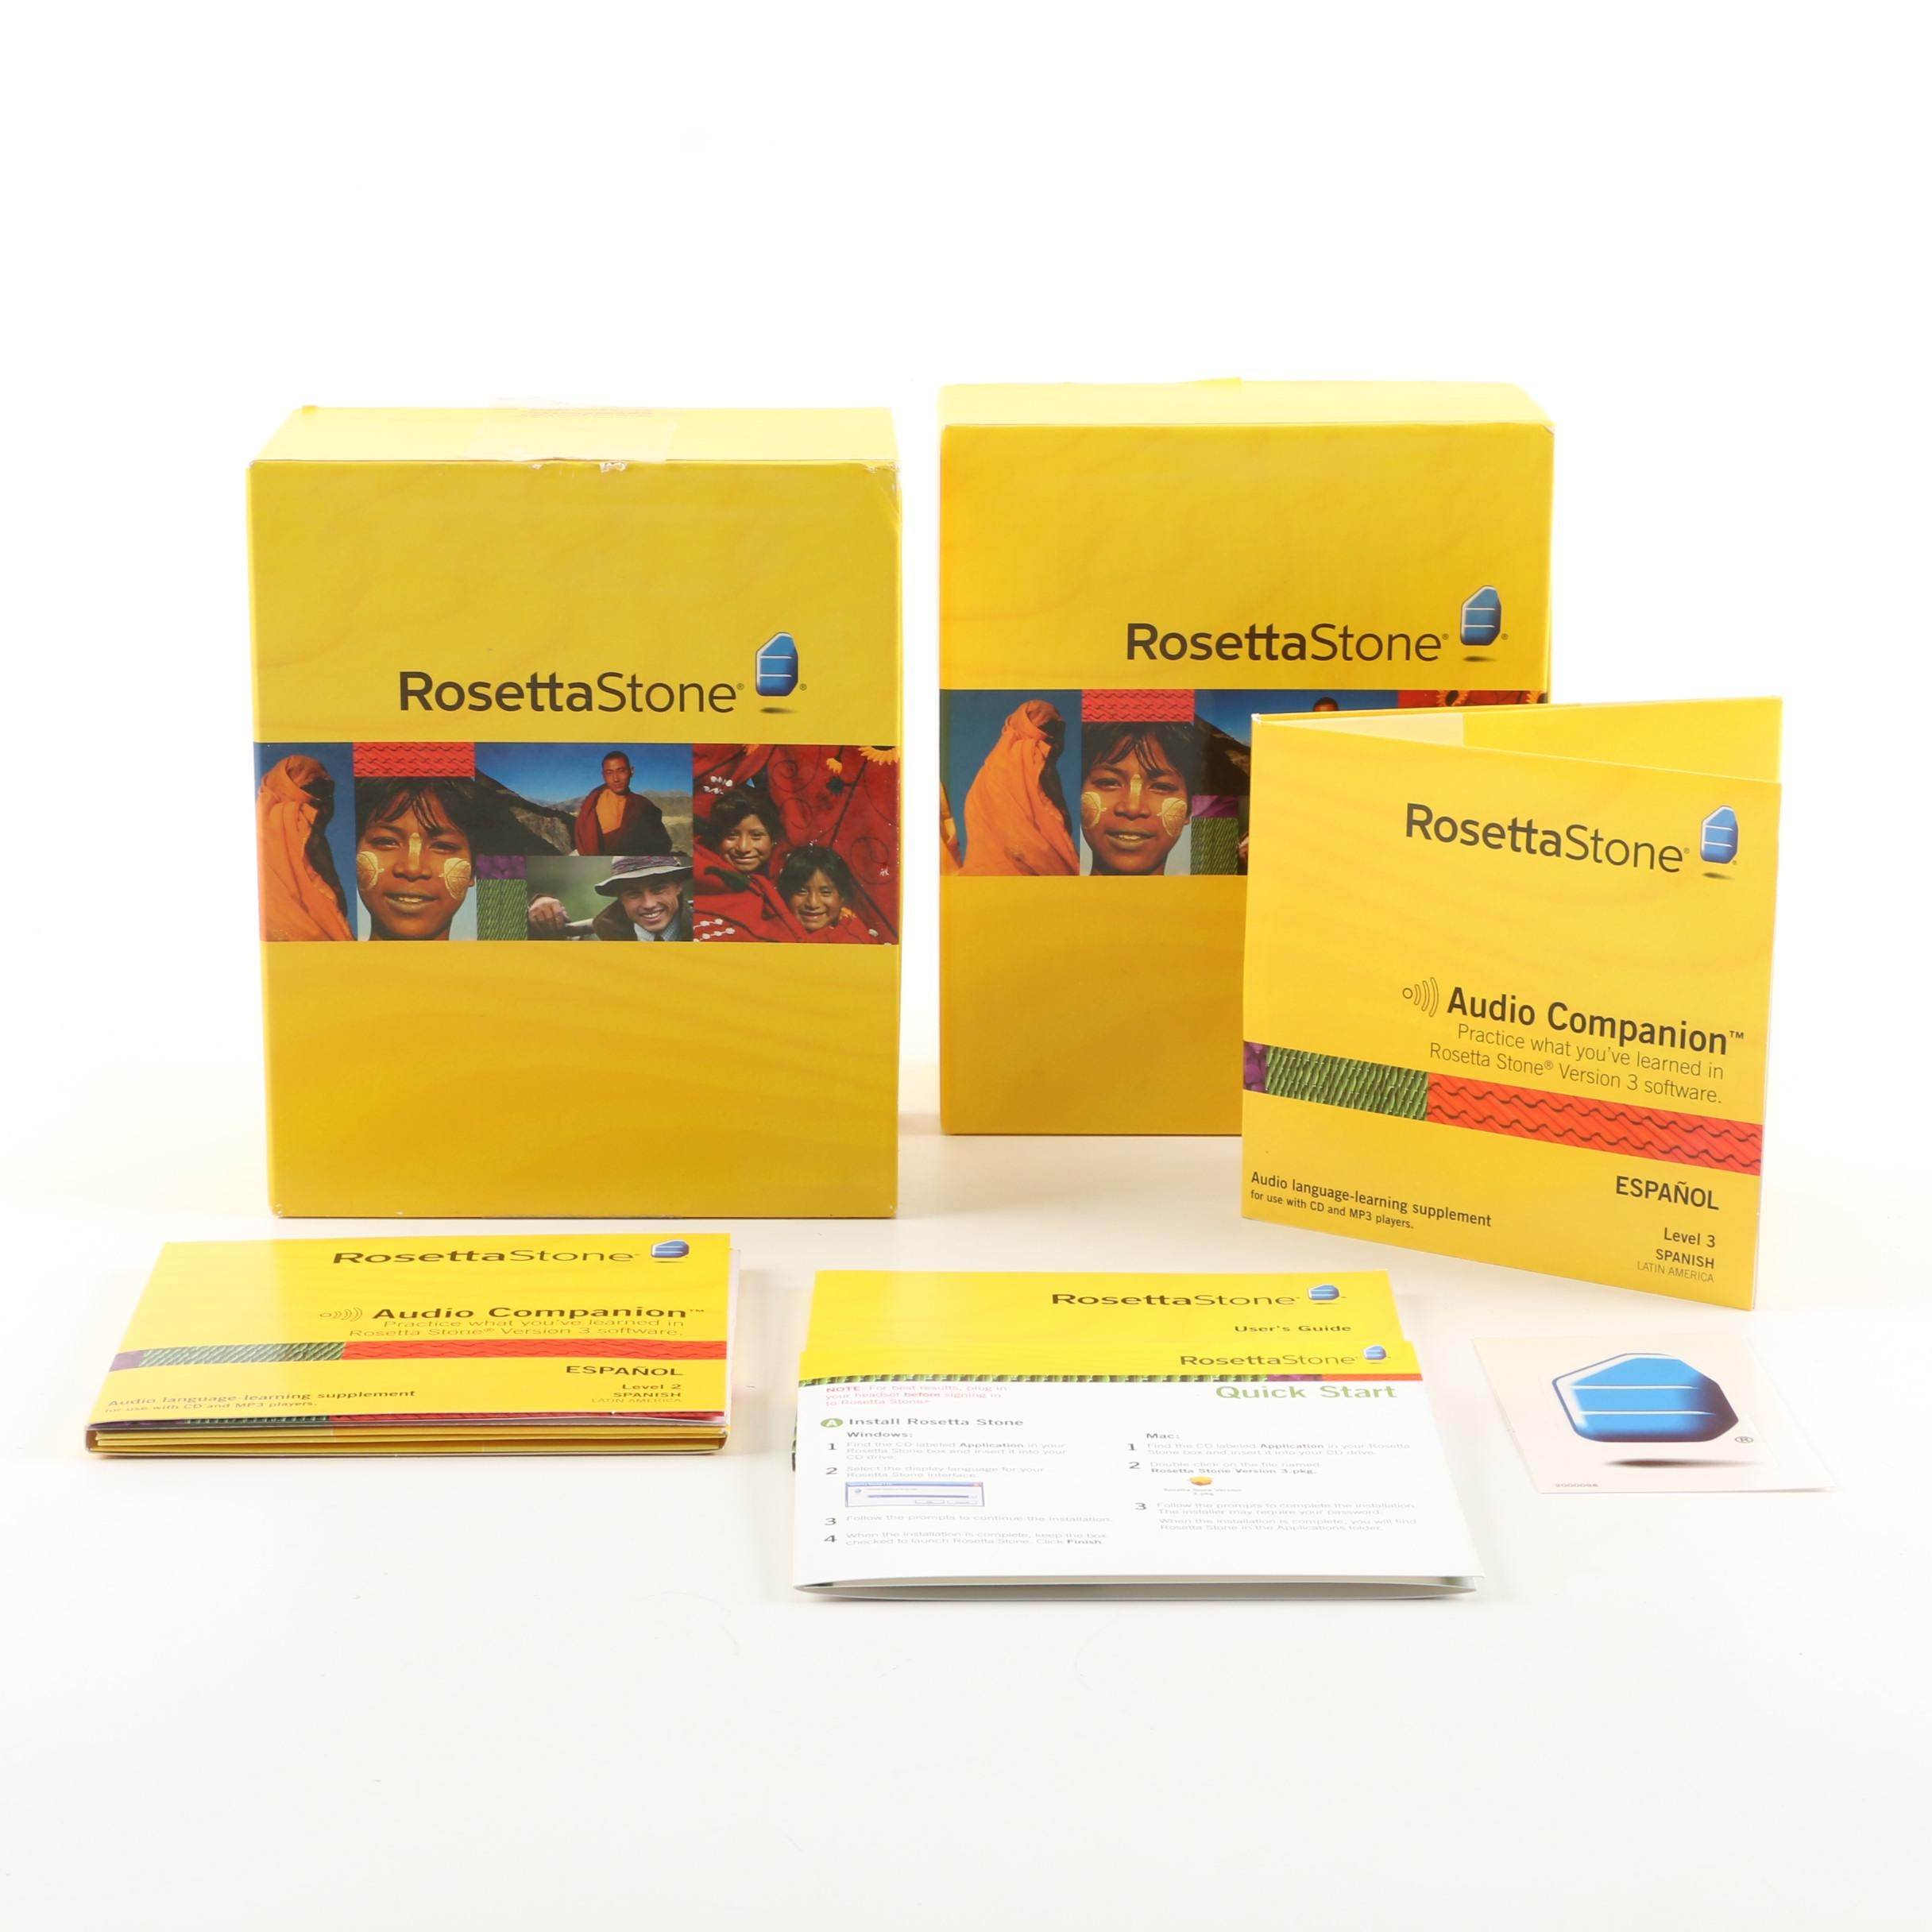 Rosetta Stone Spanish Language Learning Software